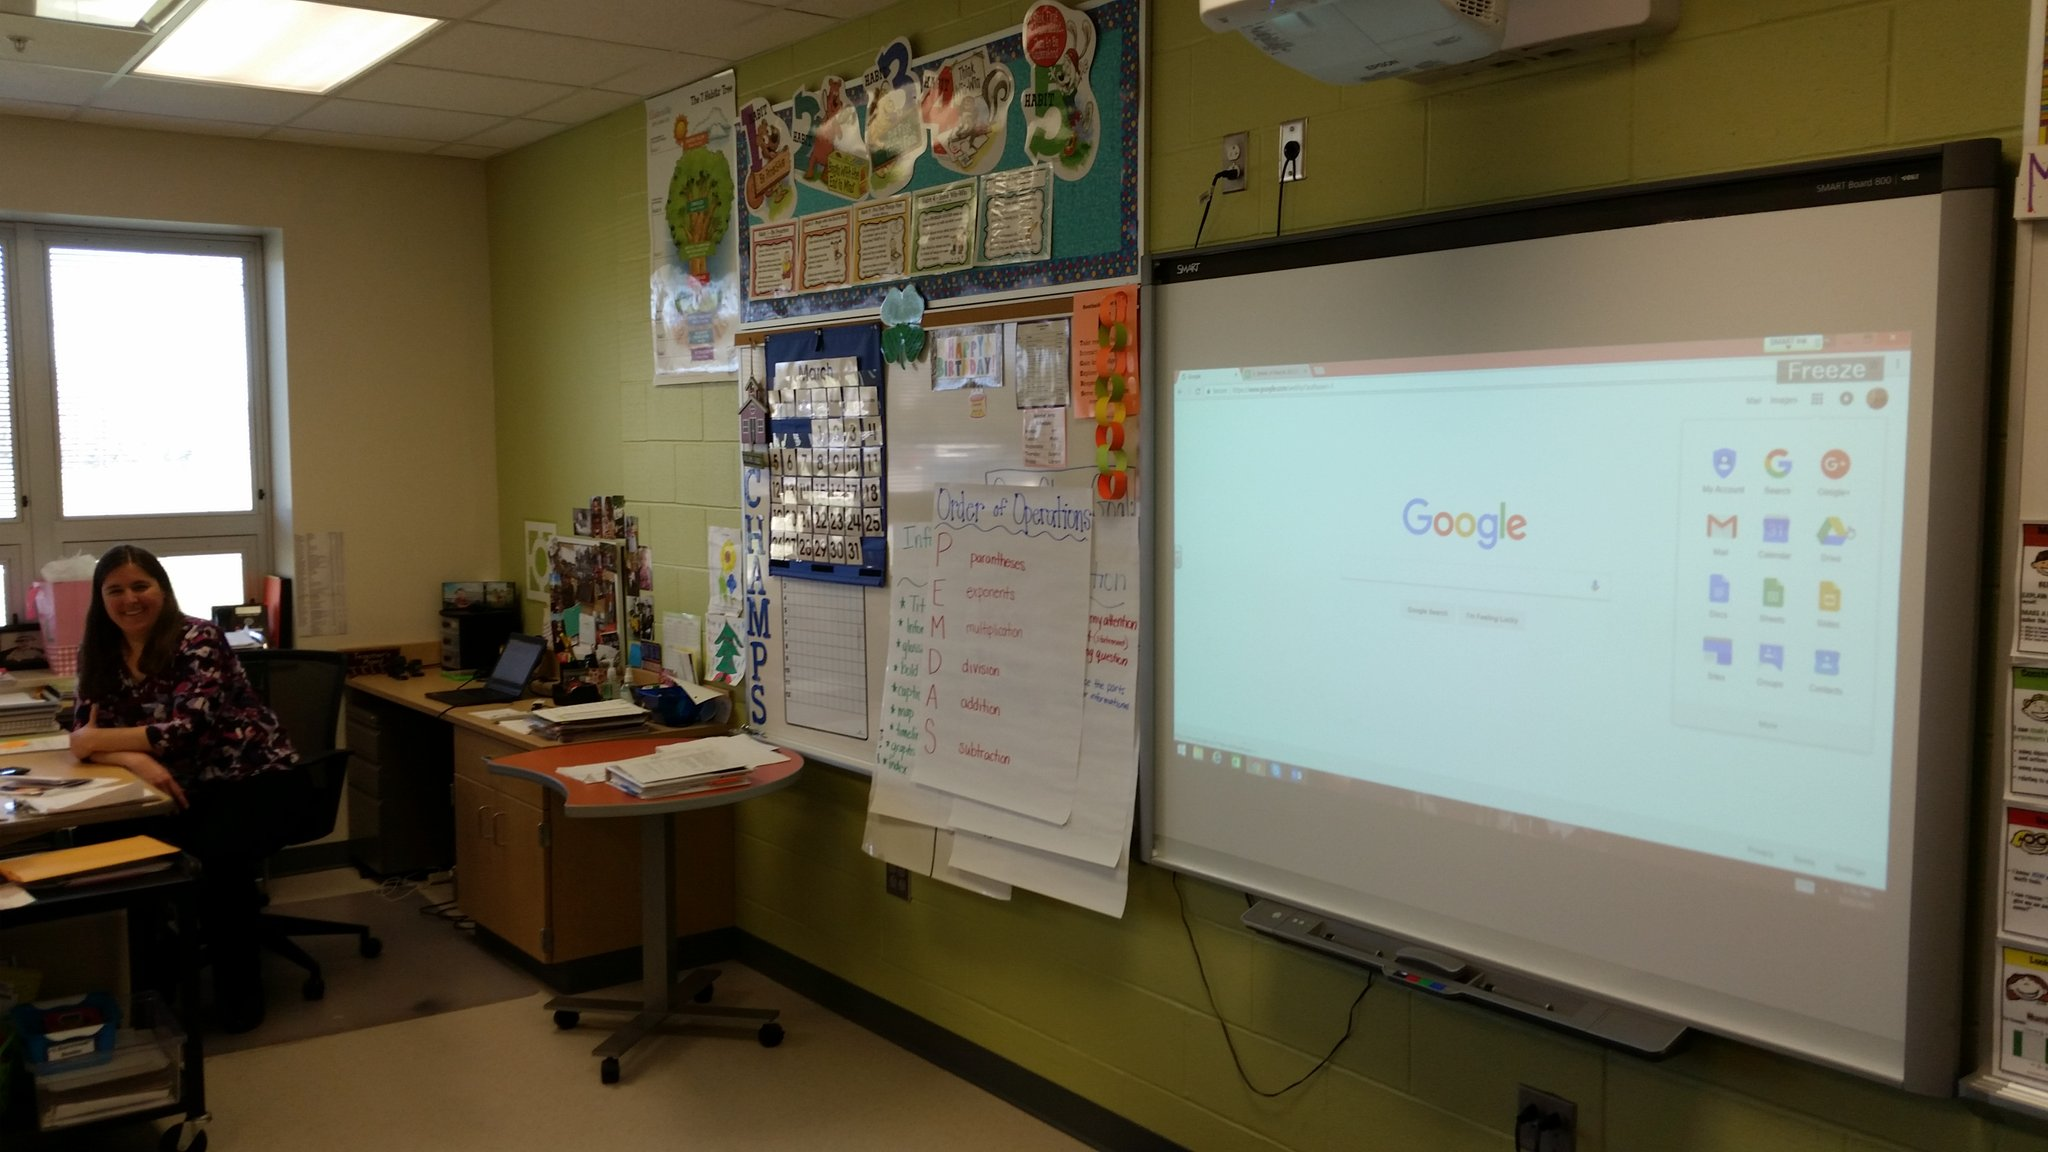 Karen Falkenstine, librarian at @SimpBobcats, shares her work with Google Docs and Drive. #SCShareFair https://t.co/IRQ21mPpvl